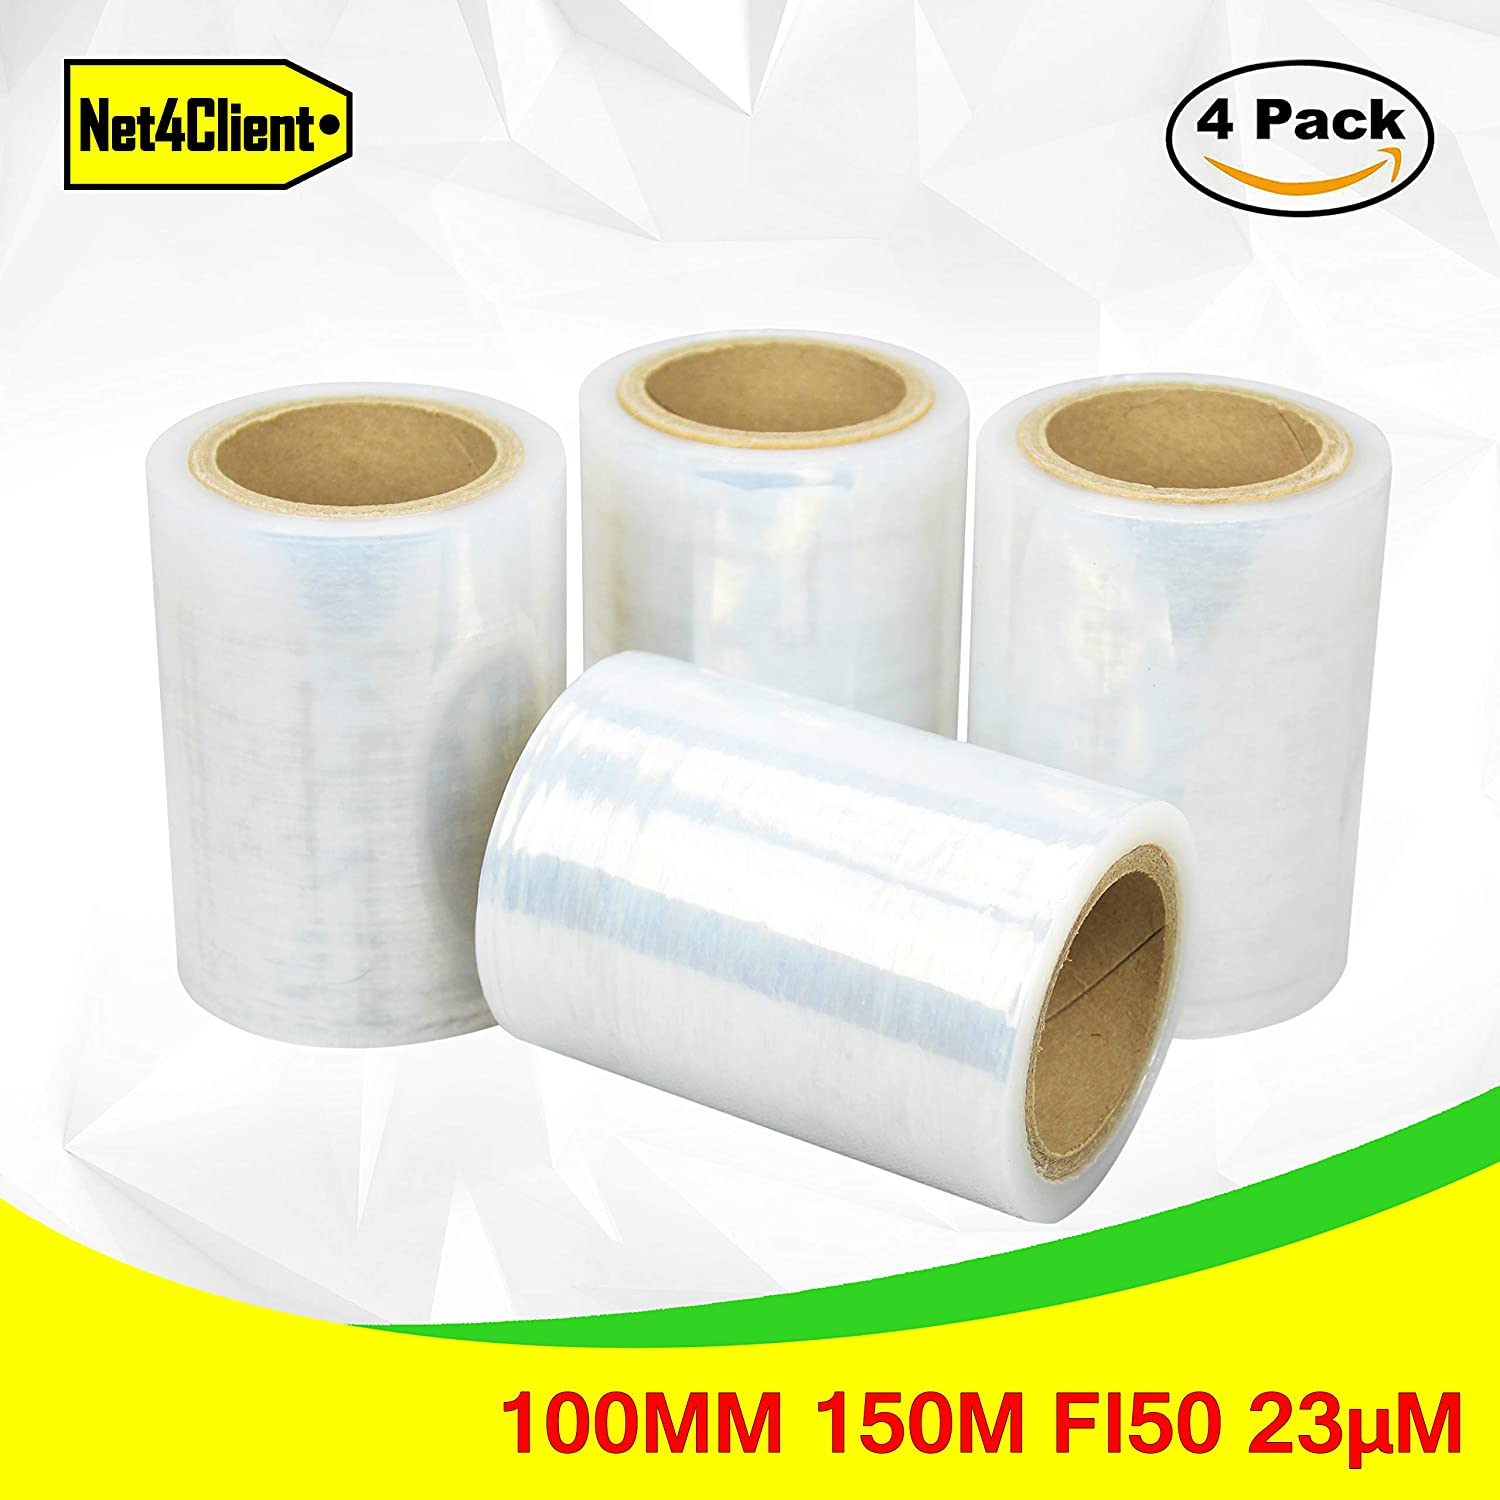 4  x Pack stretch Wrap rotoli trasparente by NET4CLIENT  –   Pacco scatole Wrap cling film stretch rotoli Fast Strong imballaggio 100  mm 150  m FI38  23Μ M